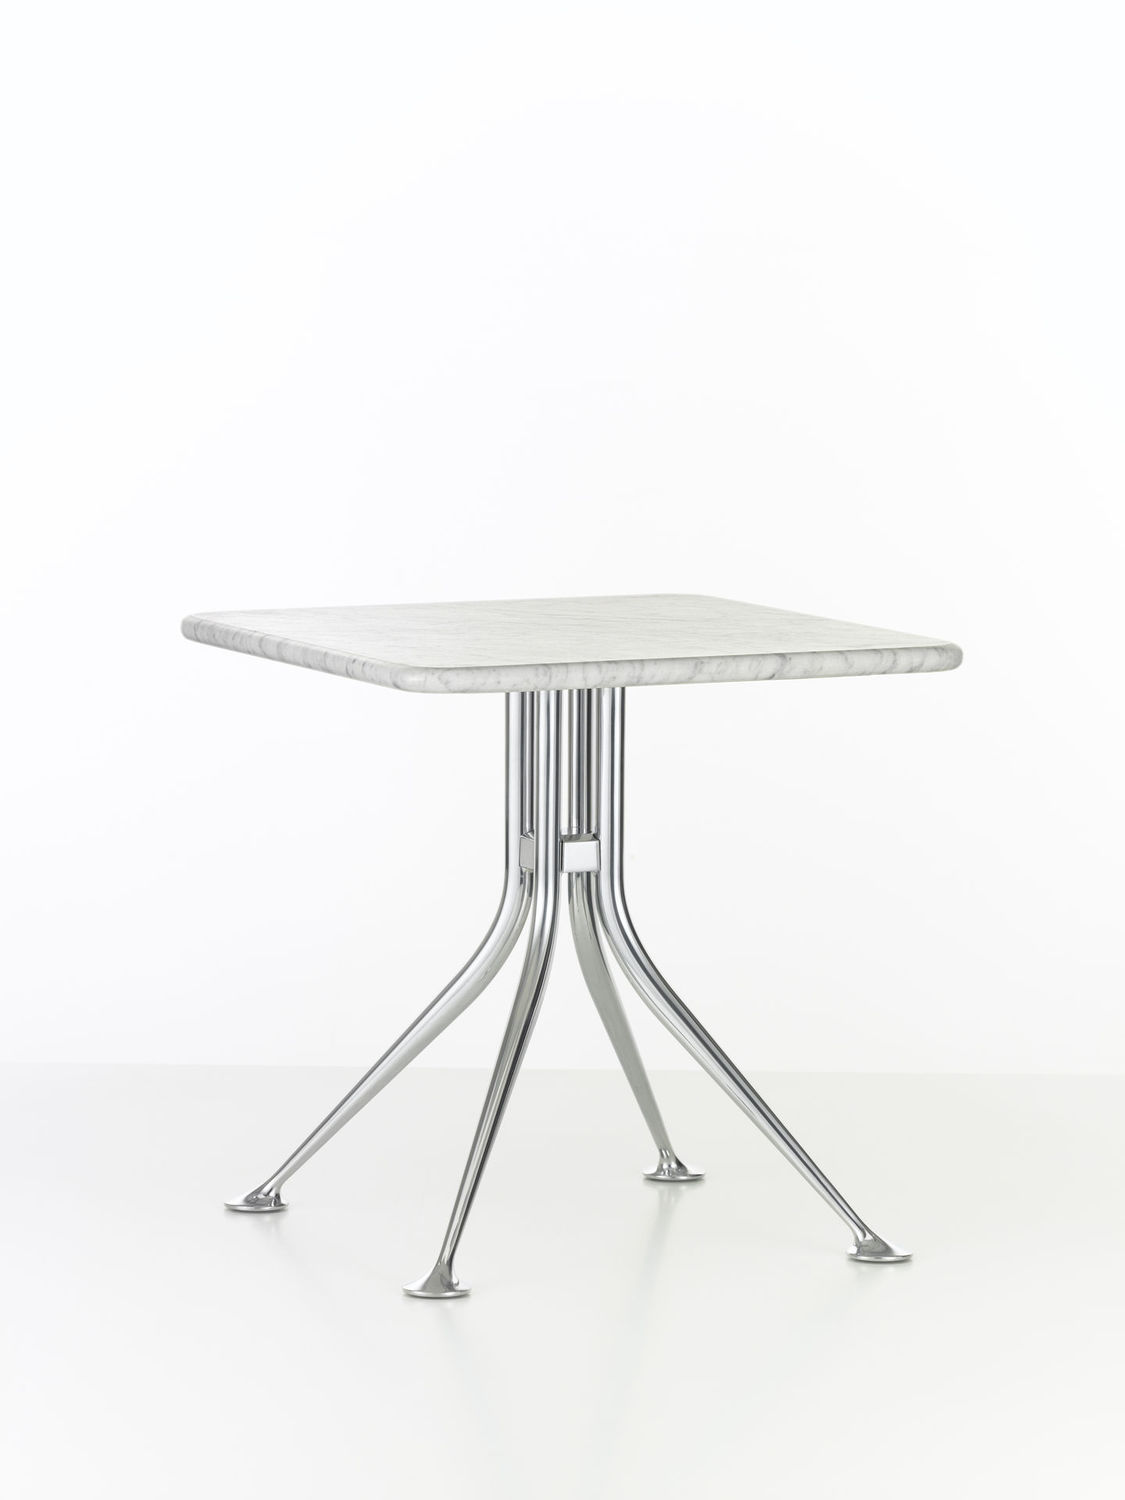 ... Contemporary Side Table / Marble / Aluminum / Round SPLAYED LEG By  Alexander Girard Vitra ...